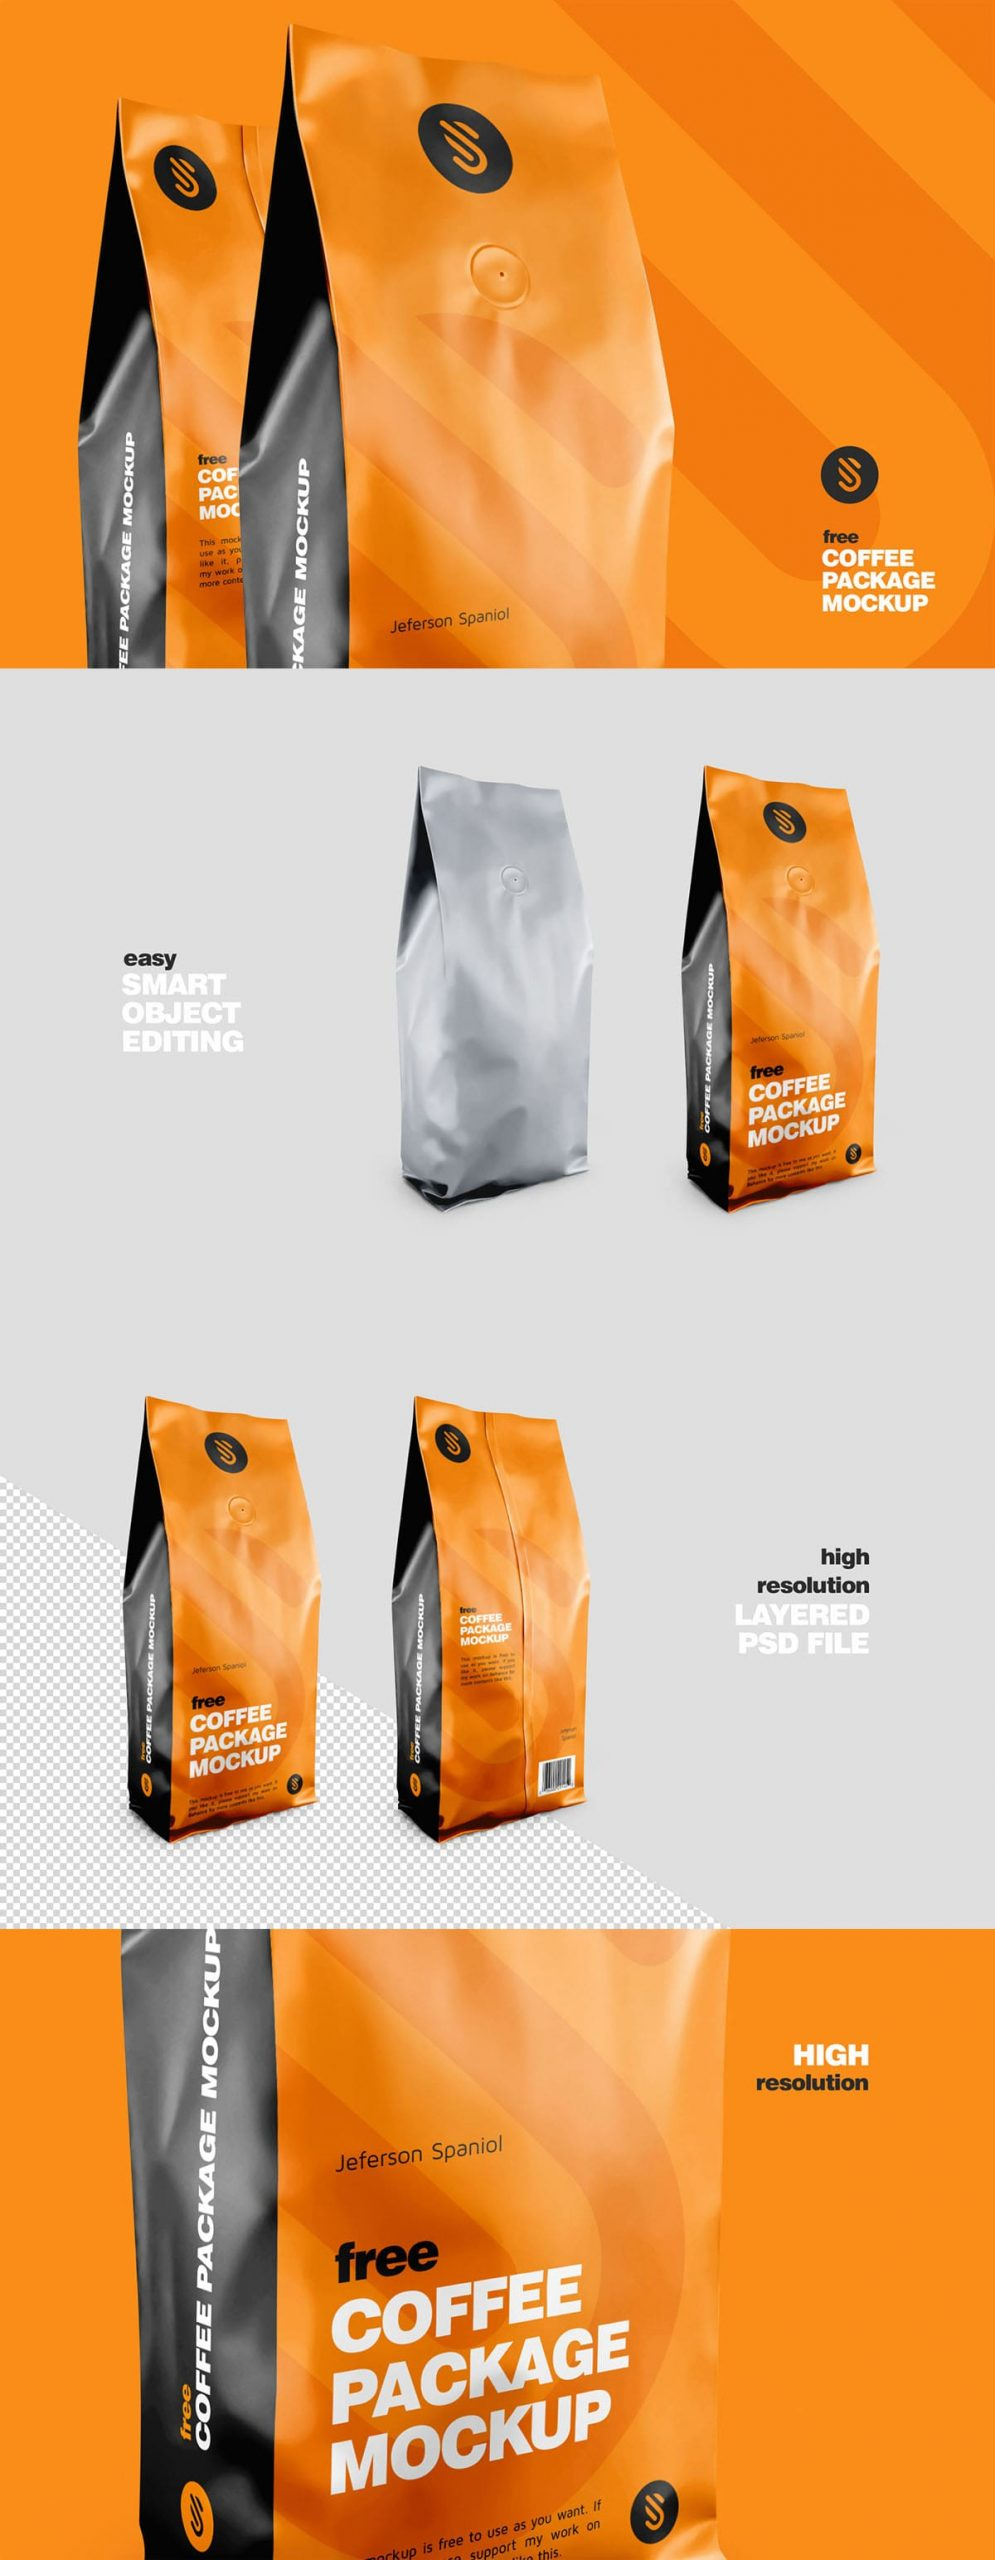 Download Free Coffee Package Mockup PSD - Find the Perfect Creative ...